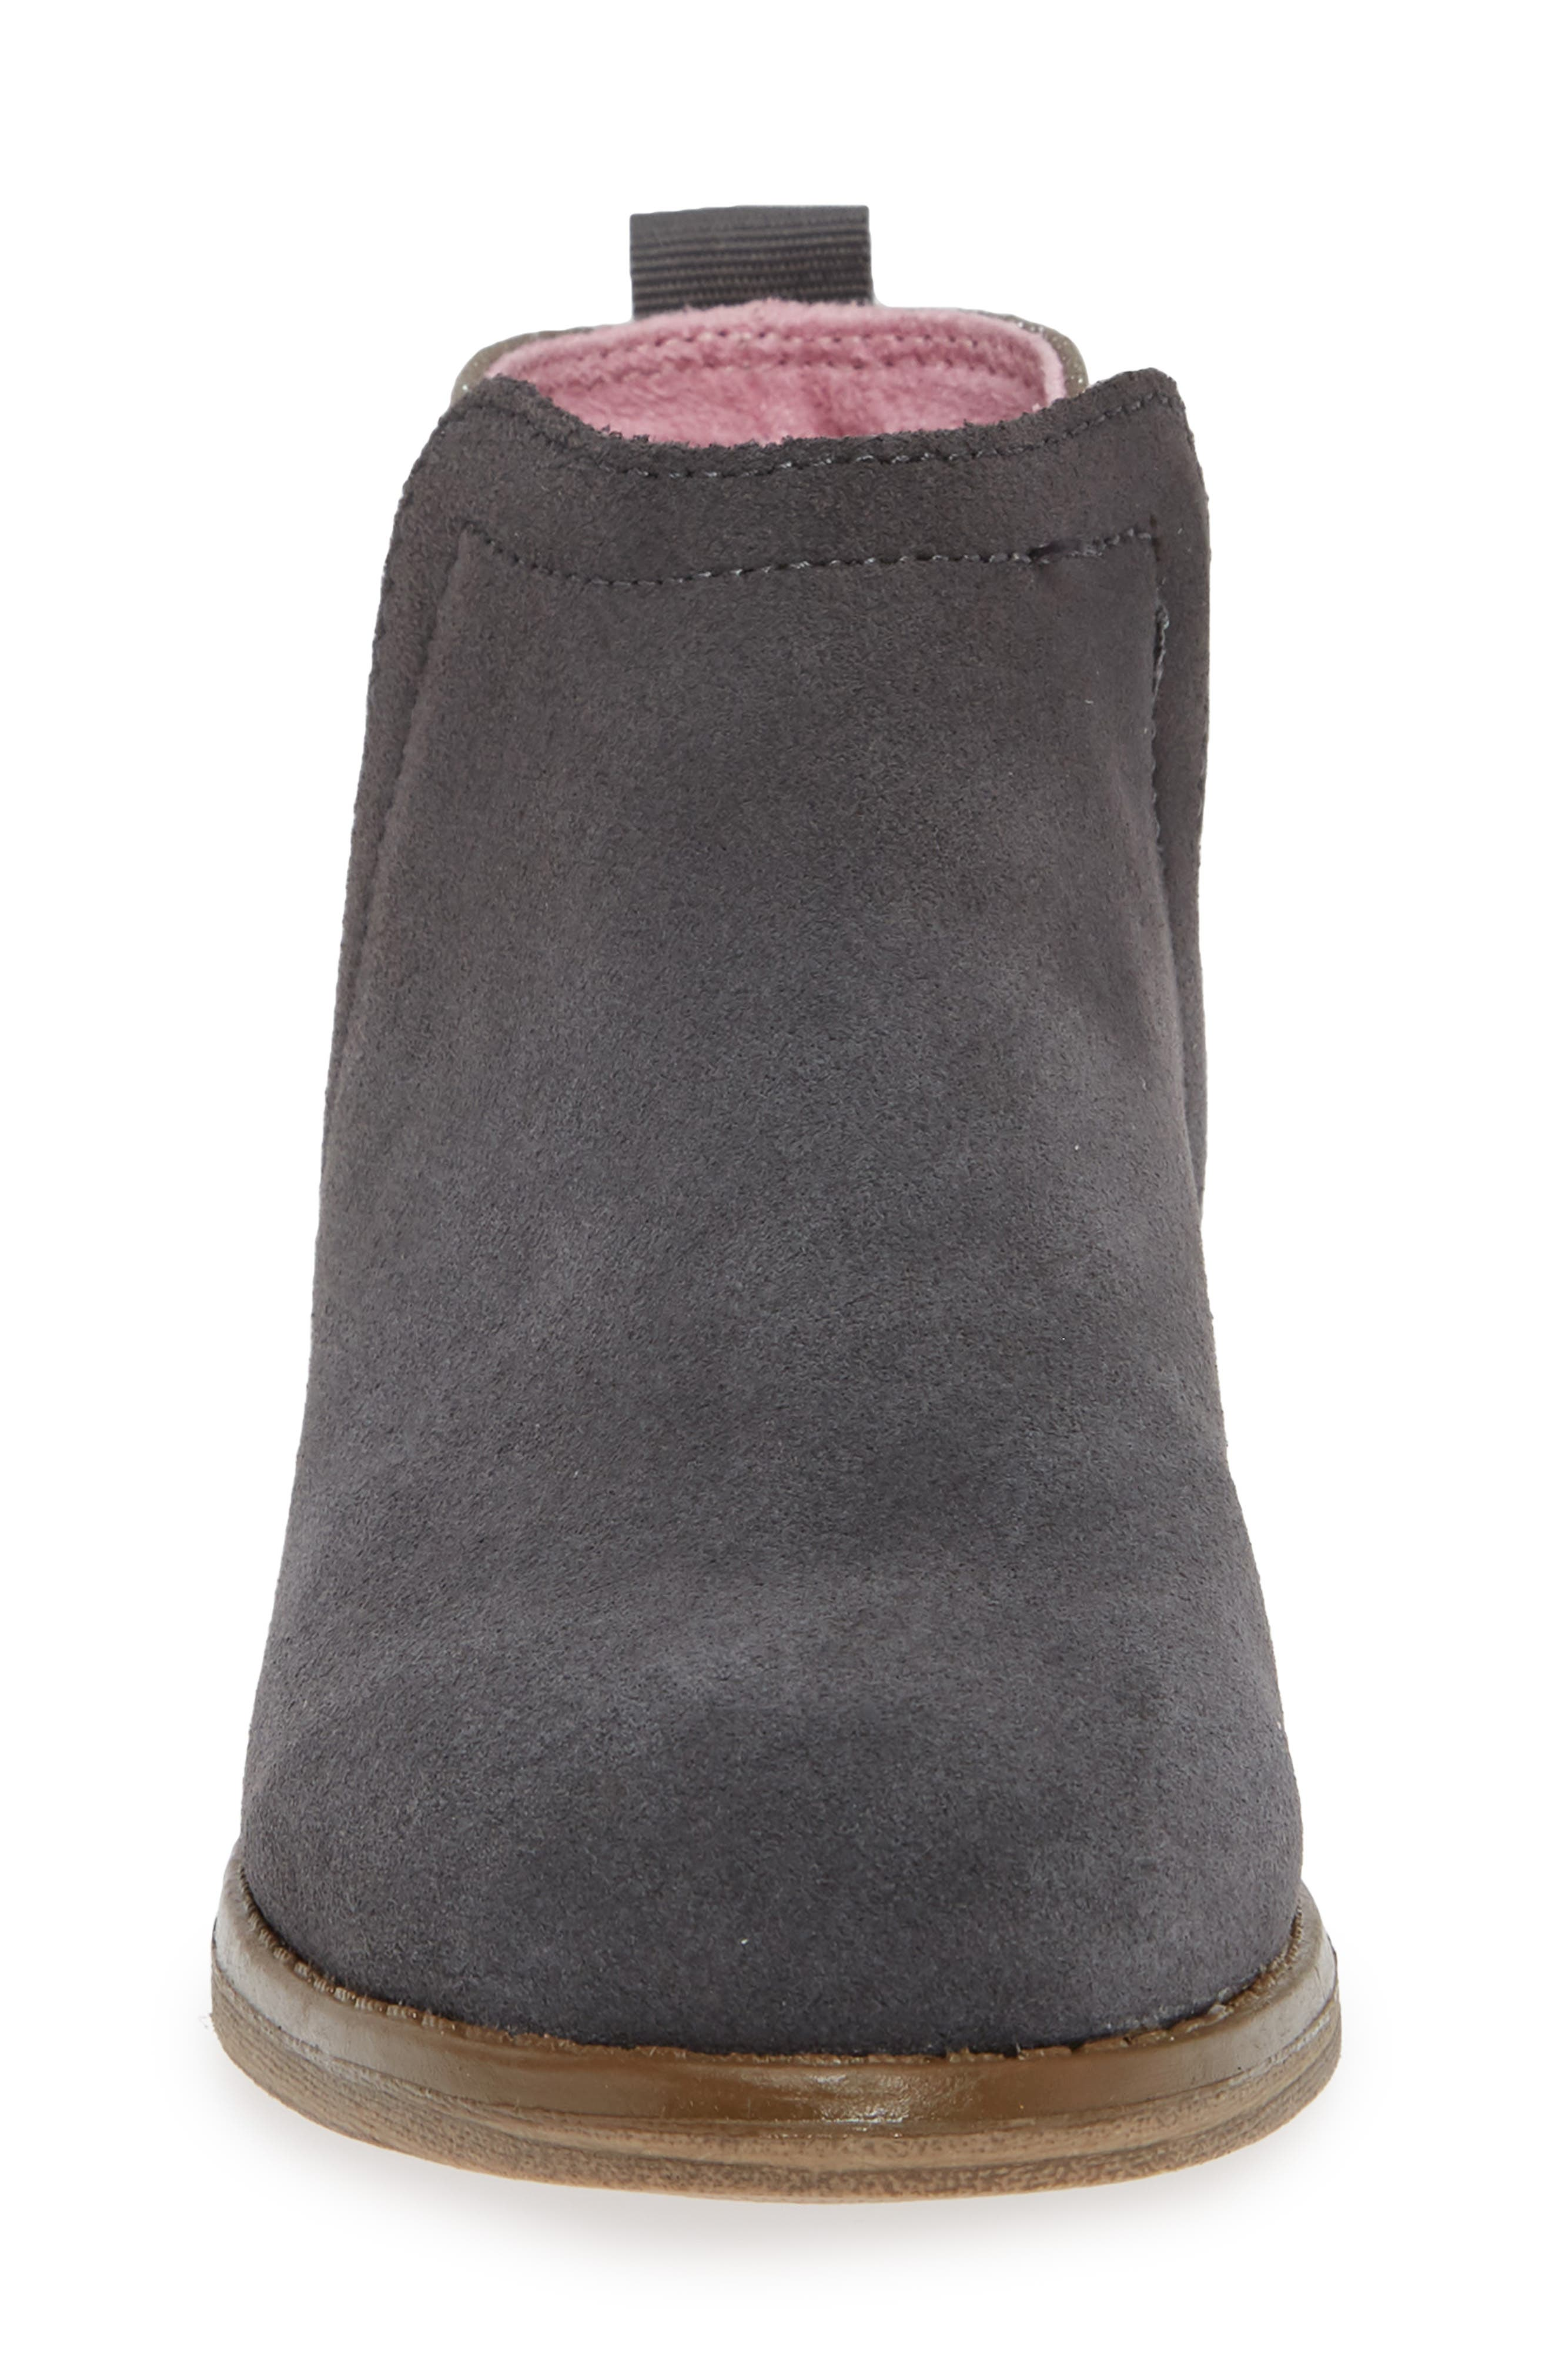 Deia Mixed Media Bootie,                             Alternate thumbnail 4, color,                             Grey Suede Glimmer